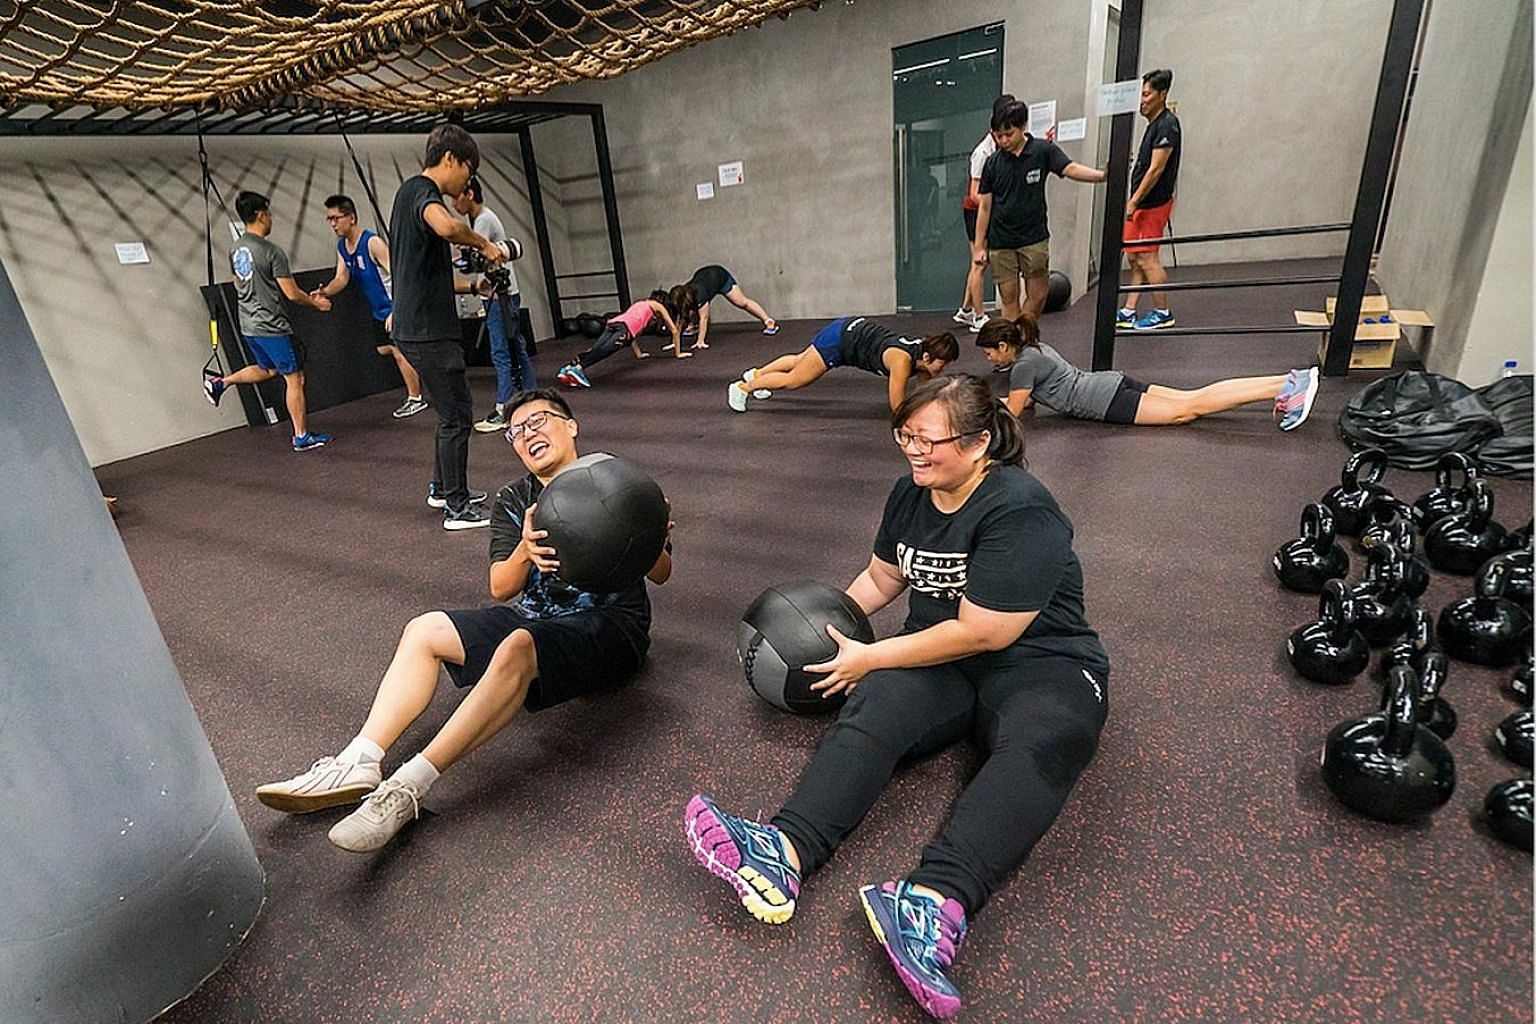 Christine Lim (right) and her husband Wallace Tan working out with medicine balls during the Polar Fitness Bootcamp at TripleFit.